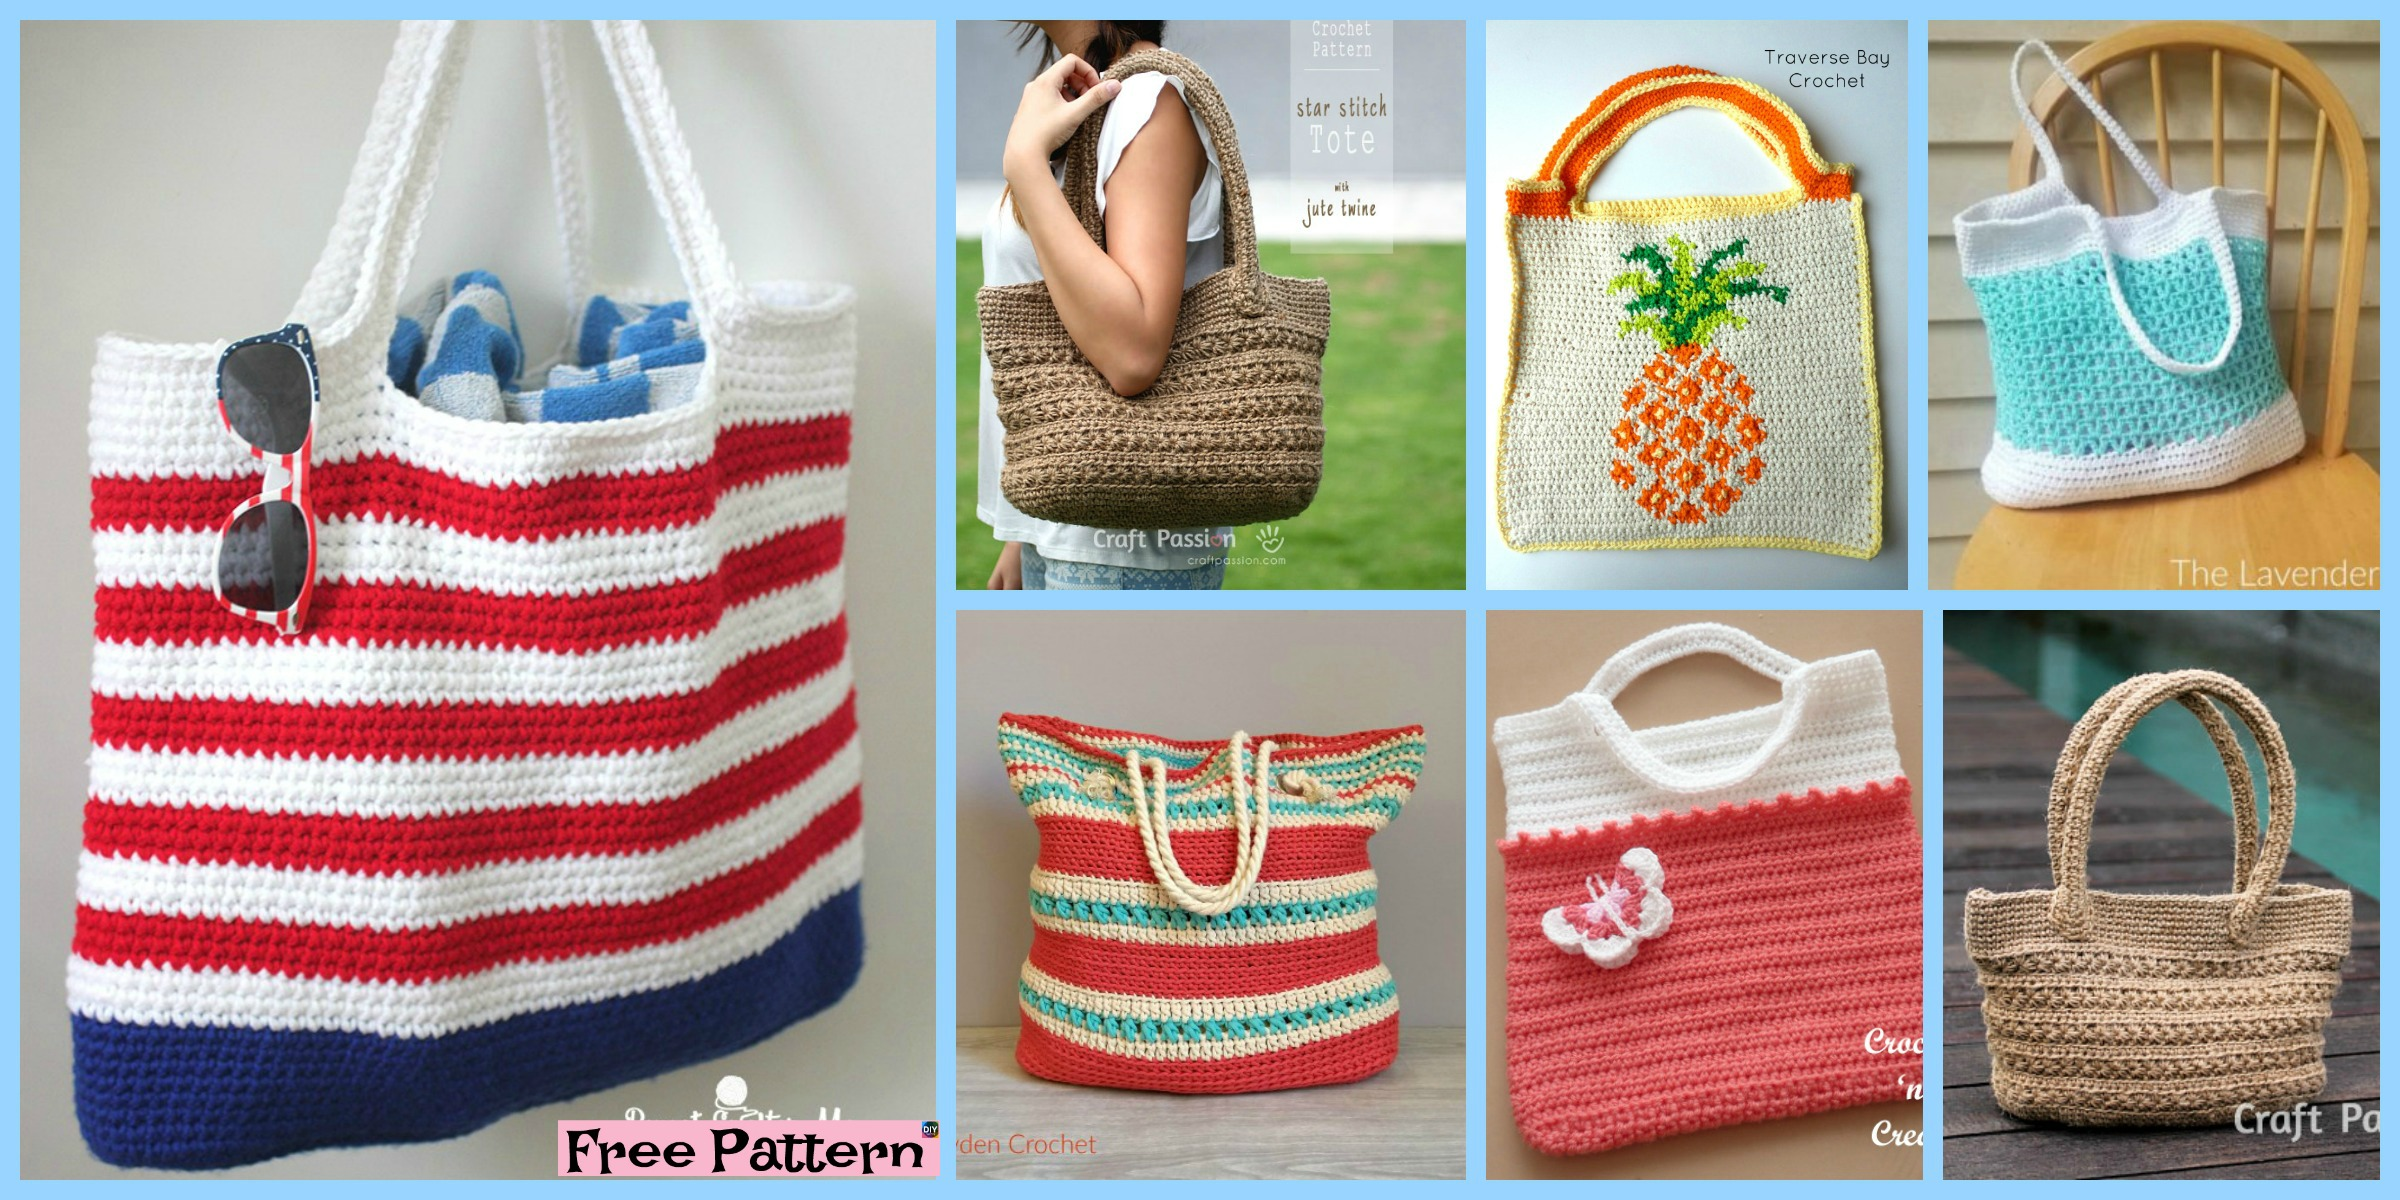 10 Pretty Crocheted Tote Bags - Free Patterns